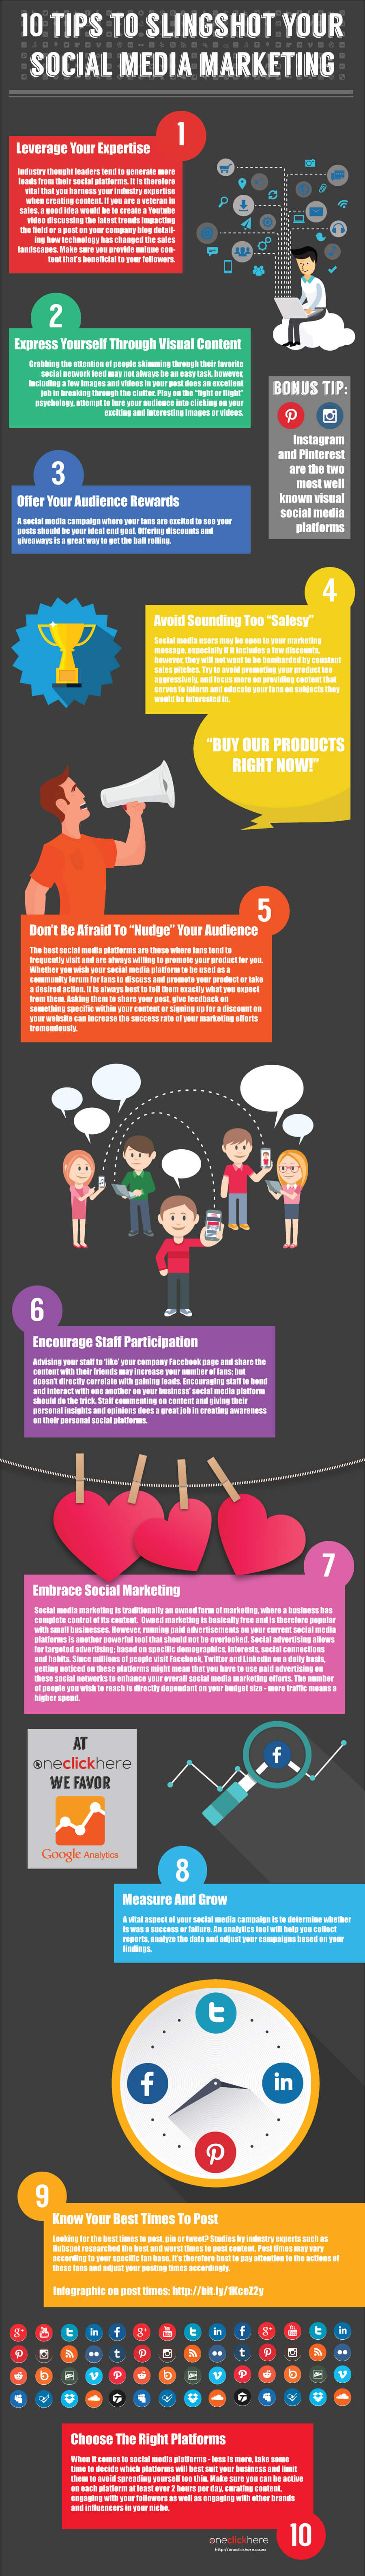 10-tips-social-media-marketing-infographic